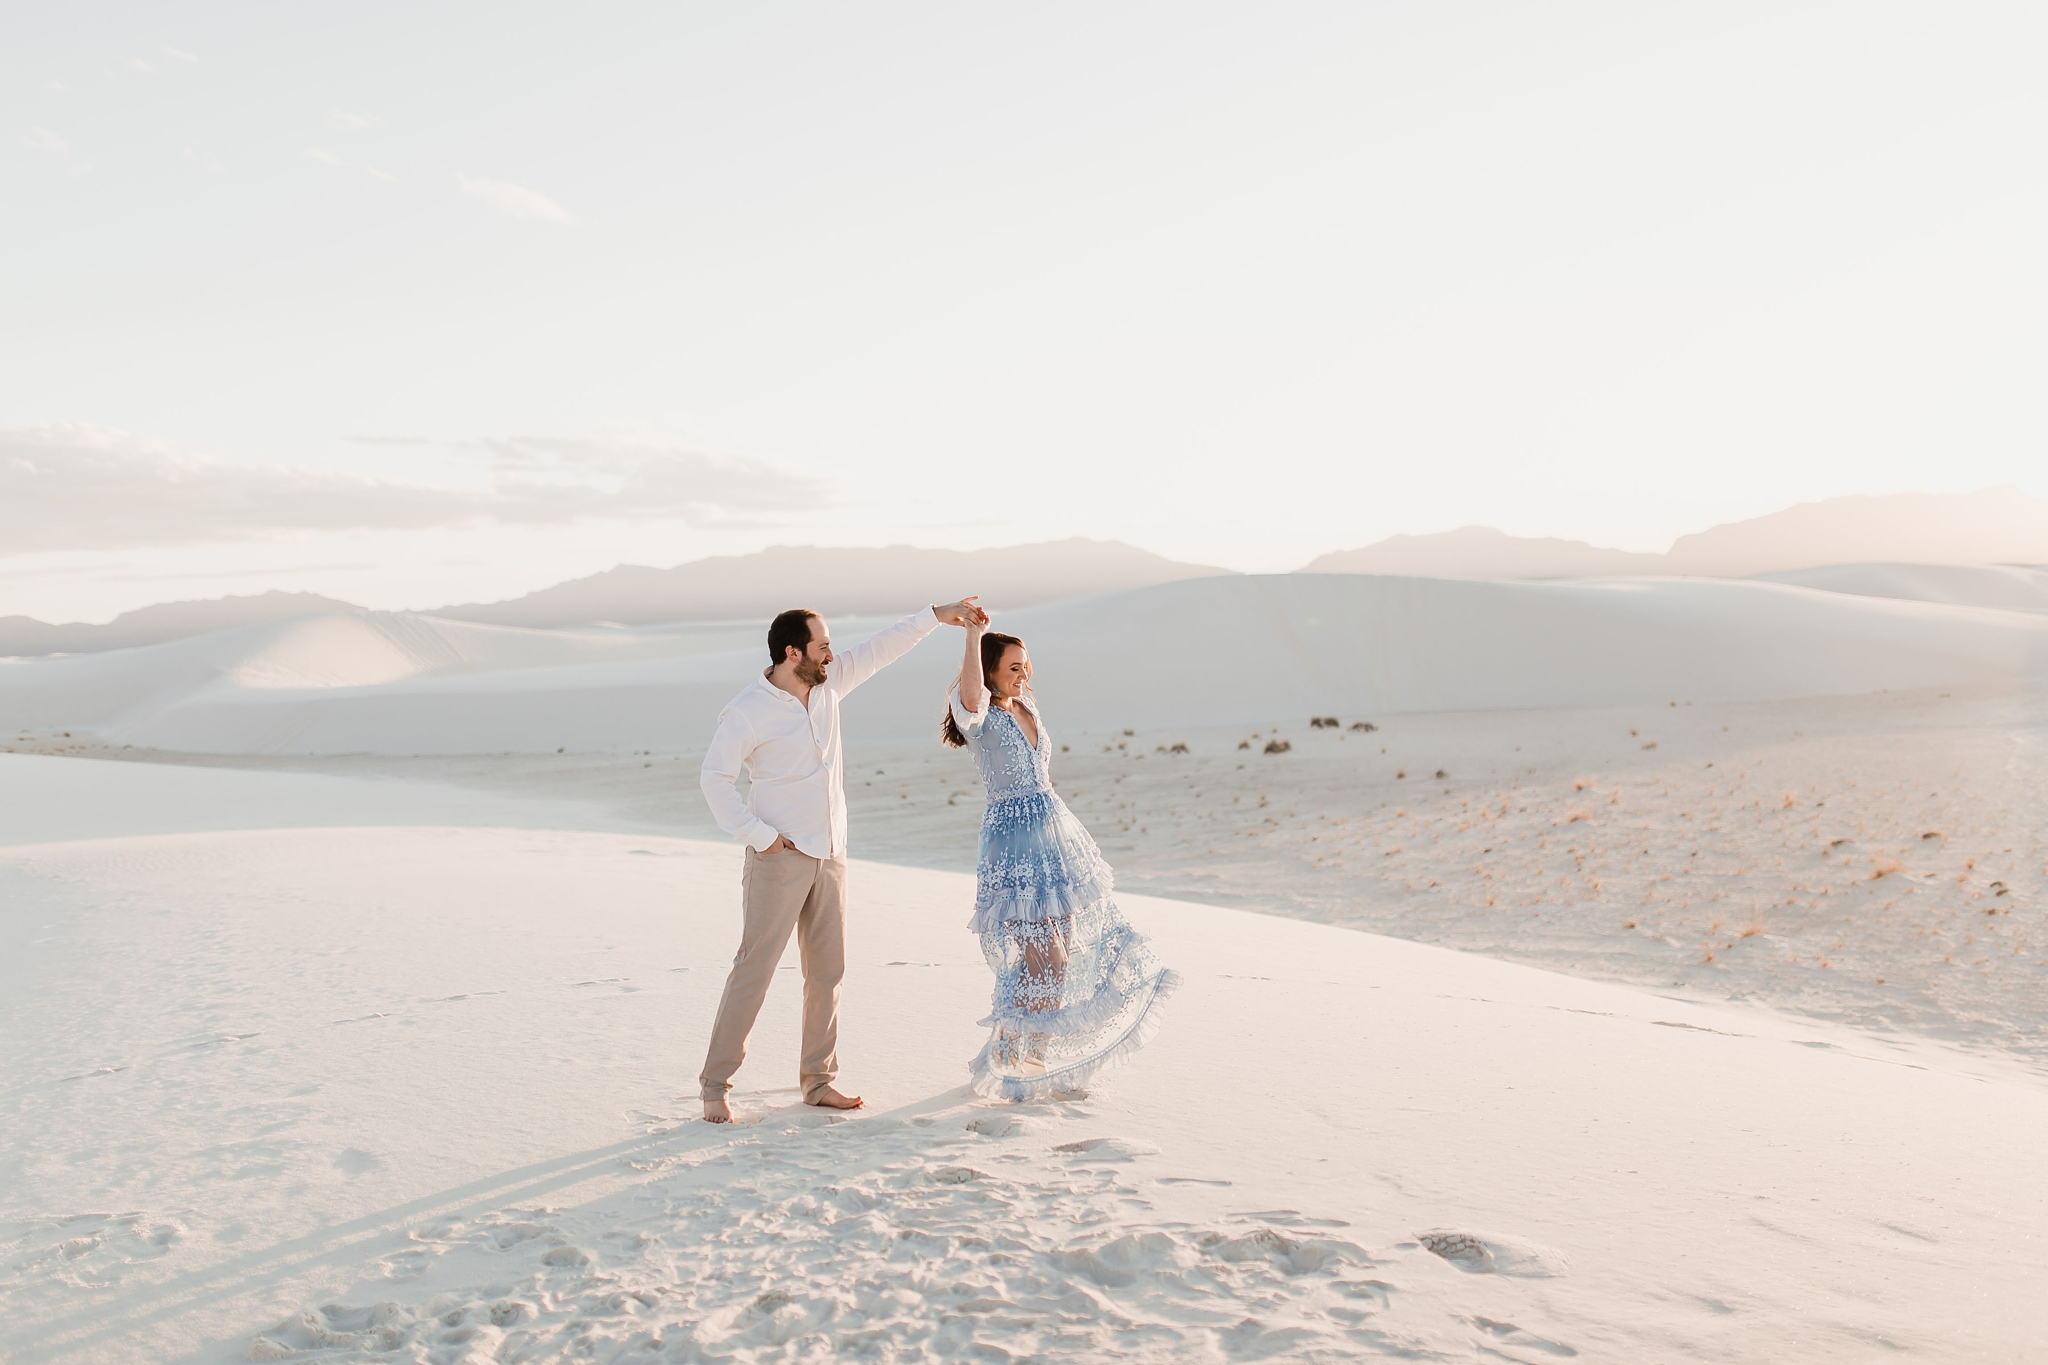 Alicia+lucia+photography+-+albuquerque+wedding+photographer+-+santa+fe+wedding+photography+-+new+mexico+wedding+photographer+-+new+mexico+wedding+-+new+mexico+engagement+-+white+sands+engagement+-+white+sands+national+monument_0035.jpg